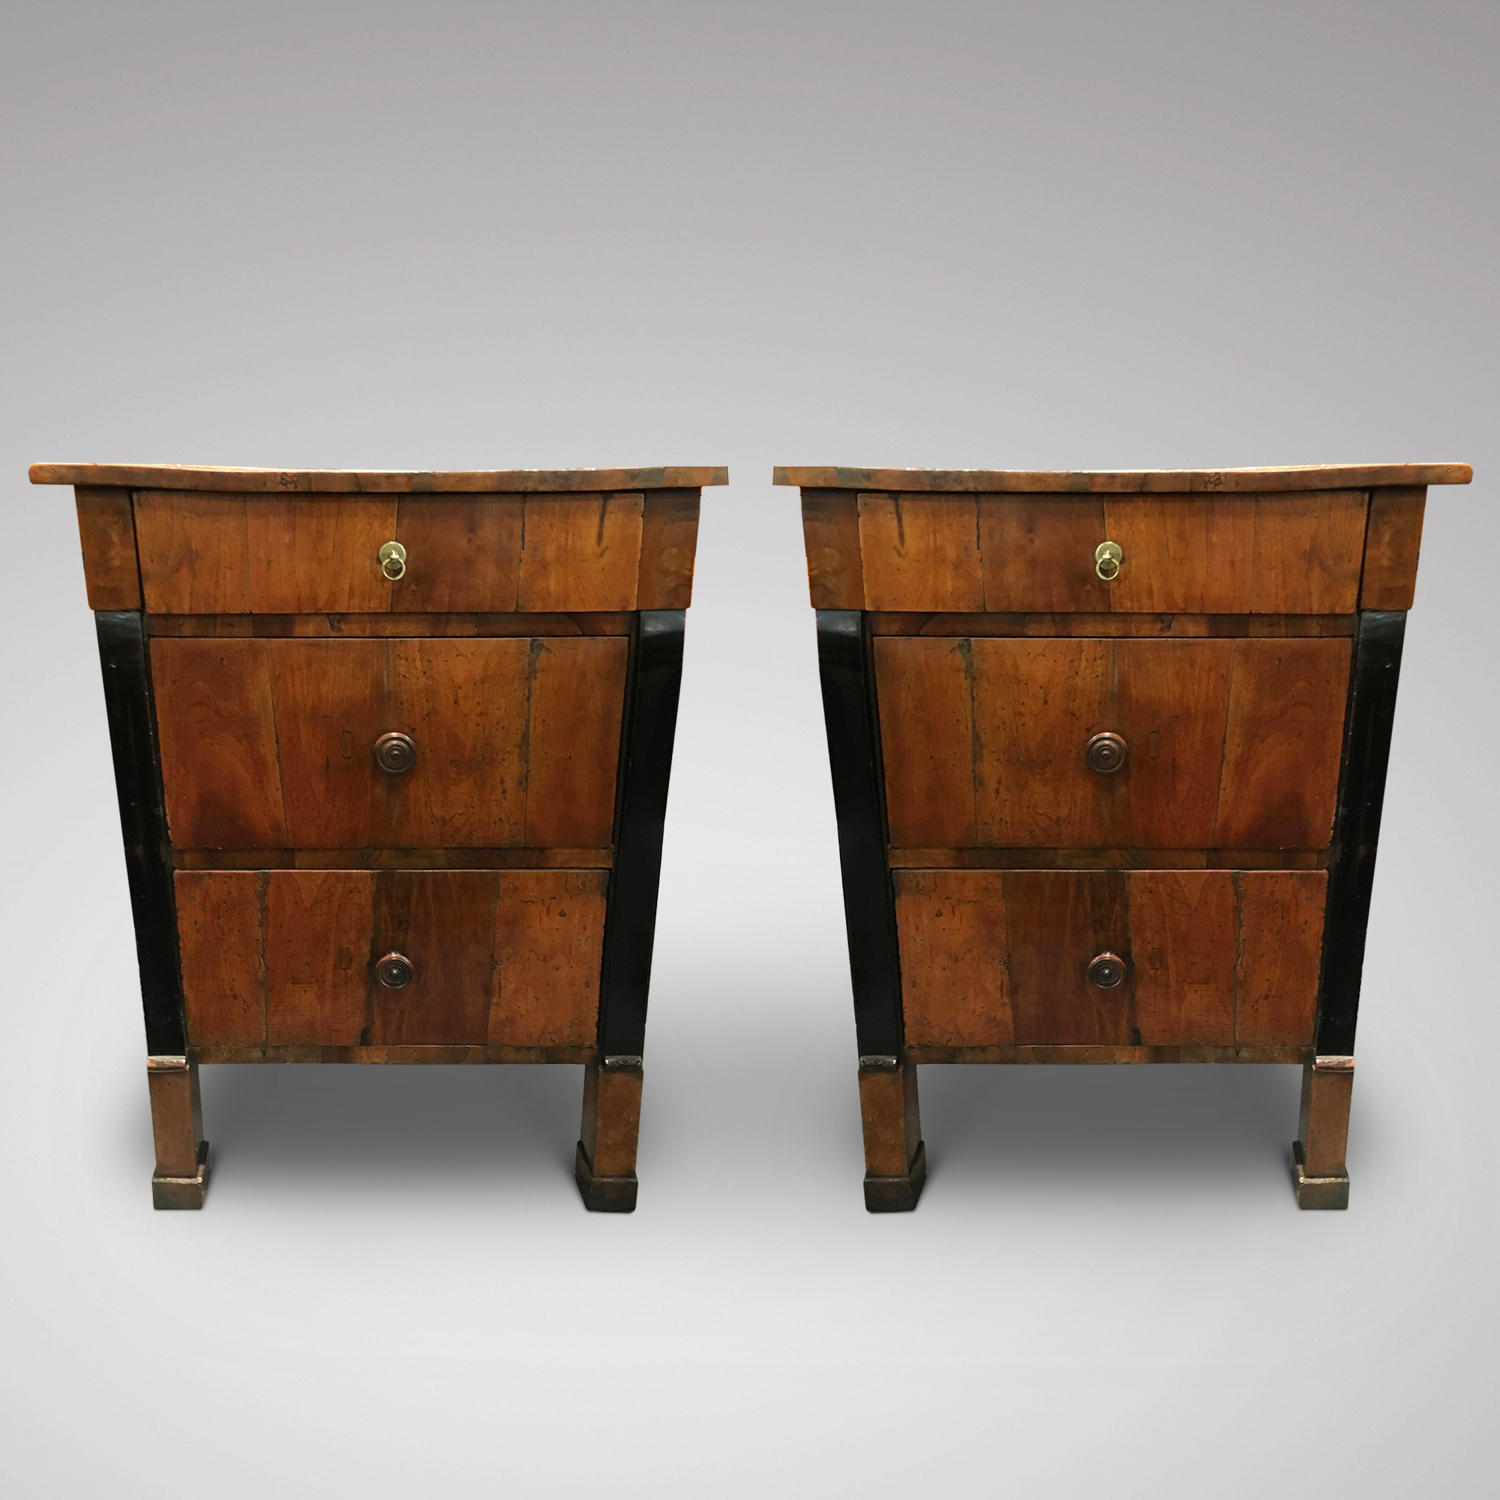 A PAIR OF FRUITWOOD COMMODINI ITALY C,1825